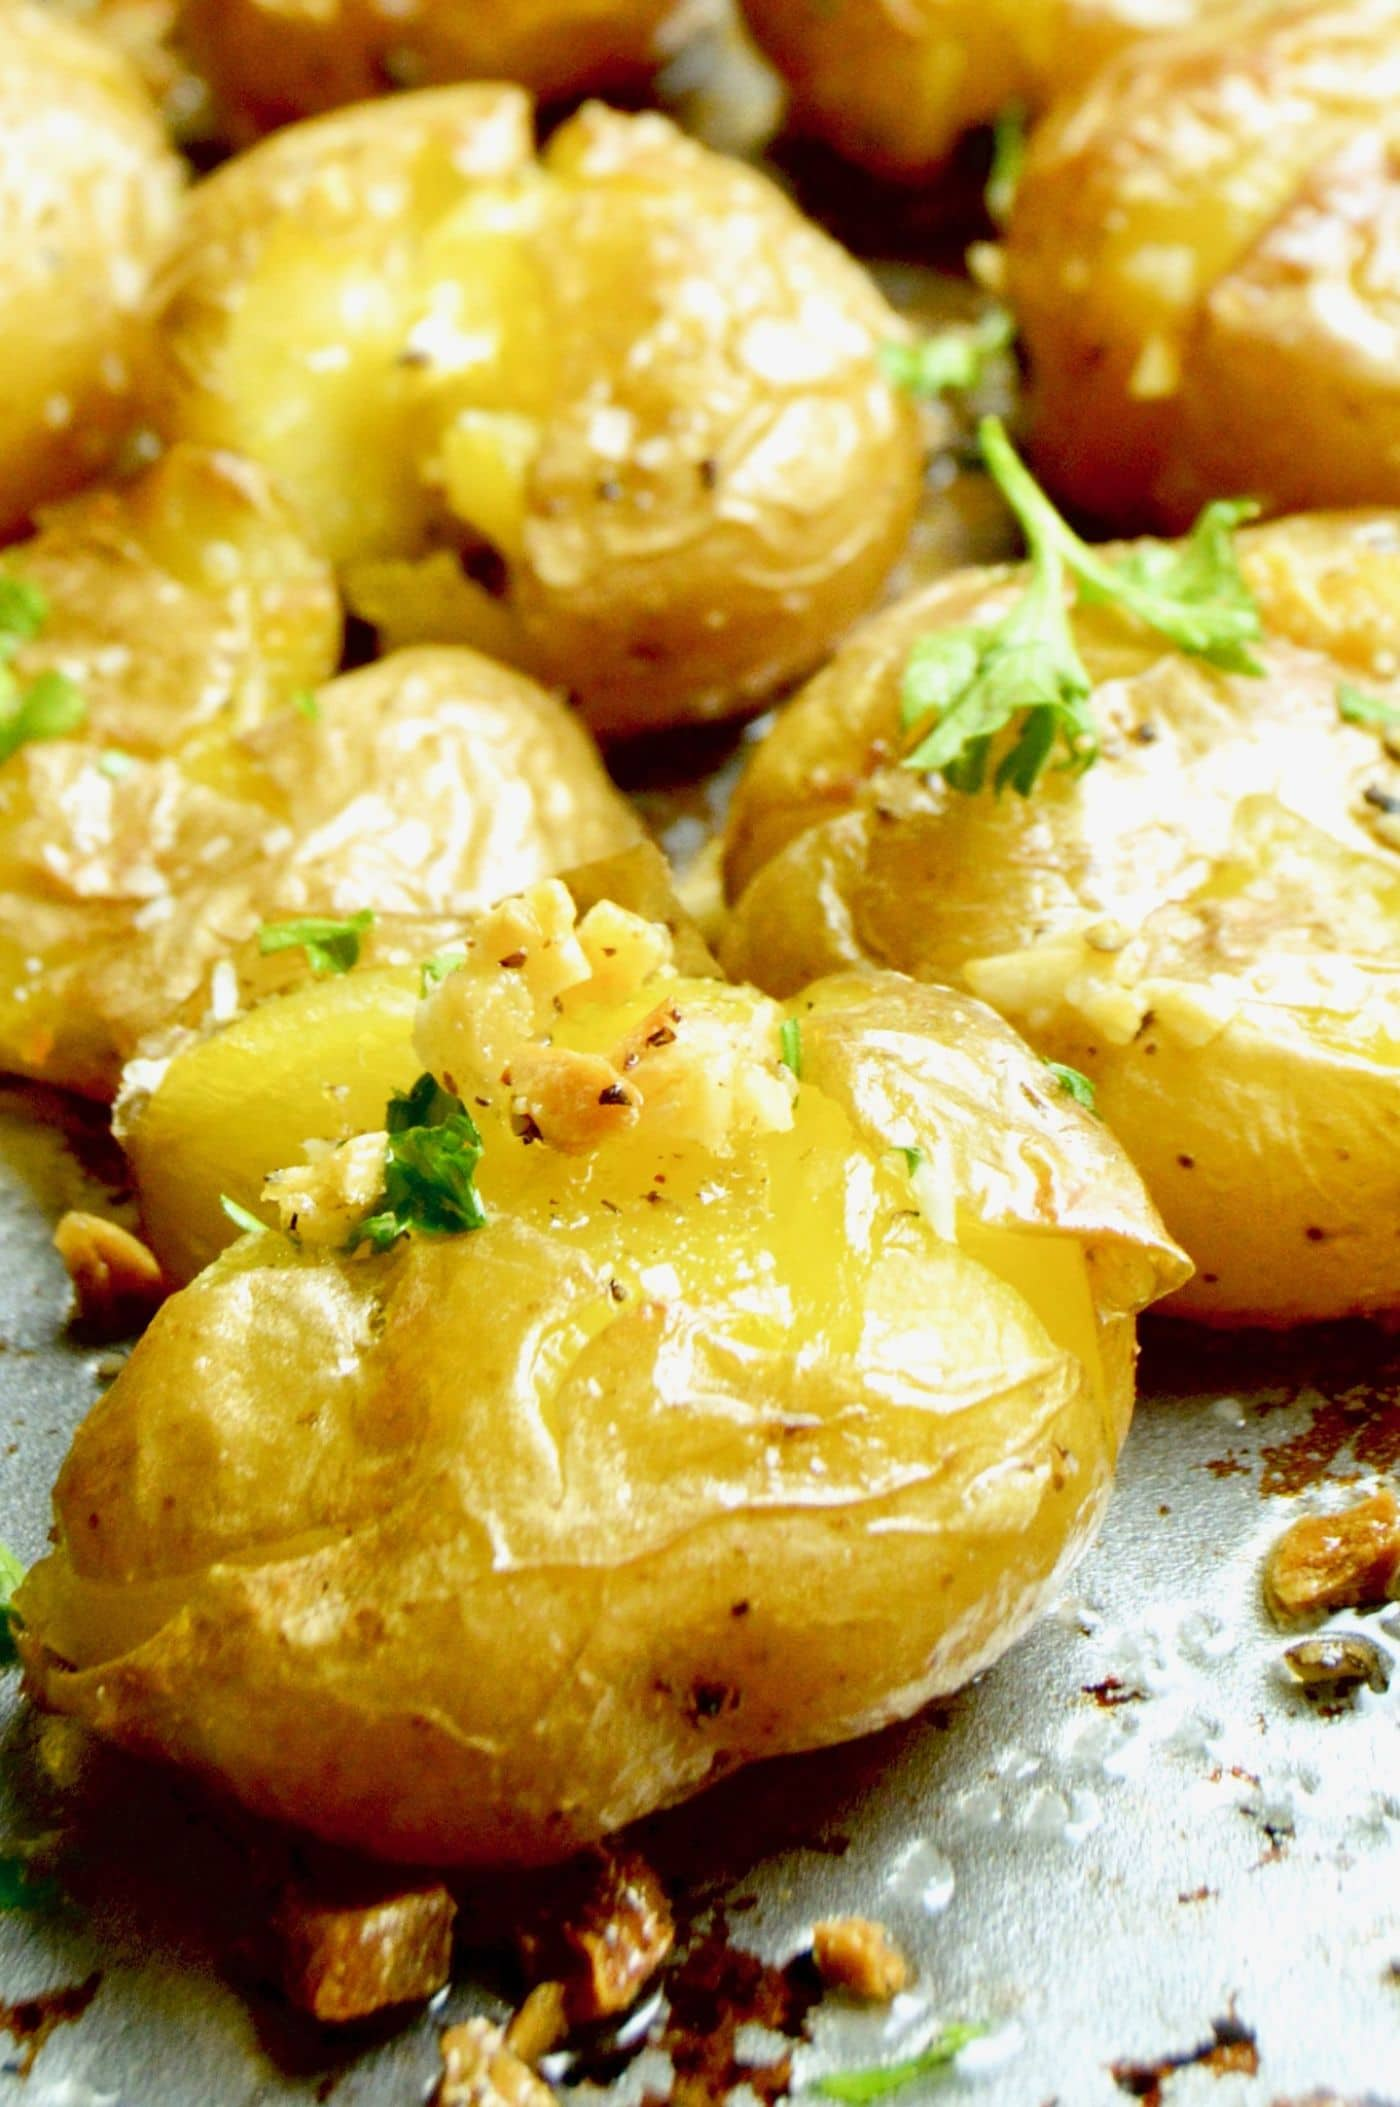 Smashed Lemon Garlic potatoes crusty crunchy on the outside, creamy inside bursting with fresh herb flavors.  A show stopping potato side dish for entertaining!